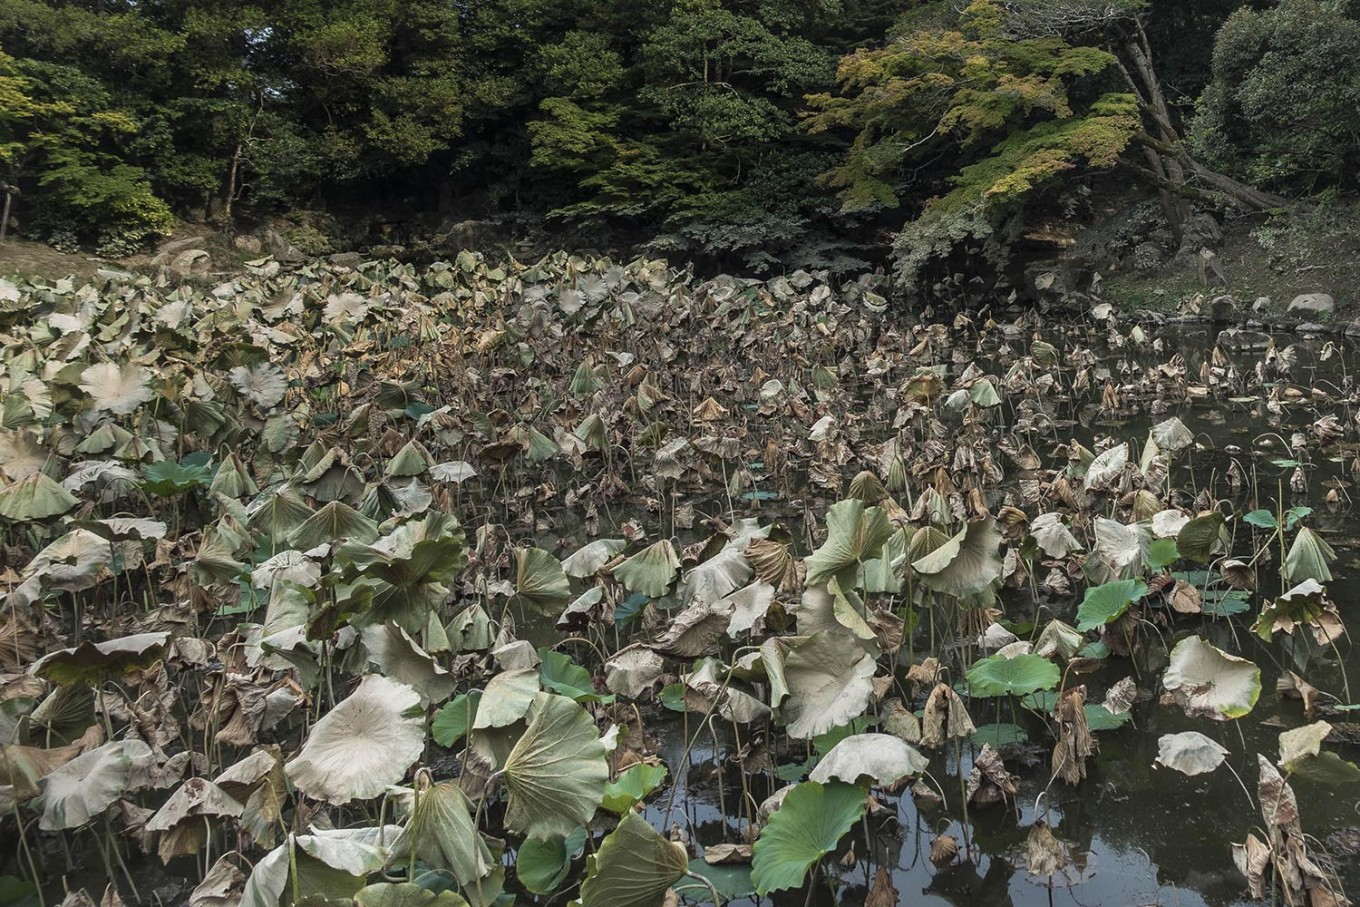 Lotus leaves in Korakuen Garden, Okayama, are withered during the summer. JP/Rosa Panggabean